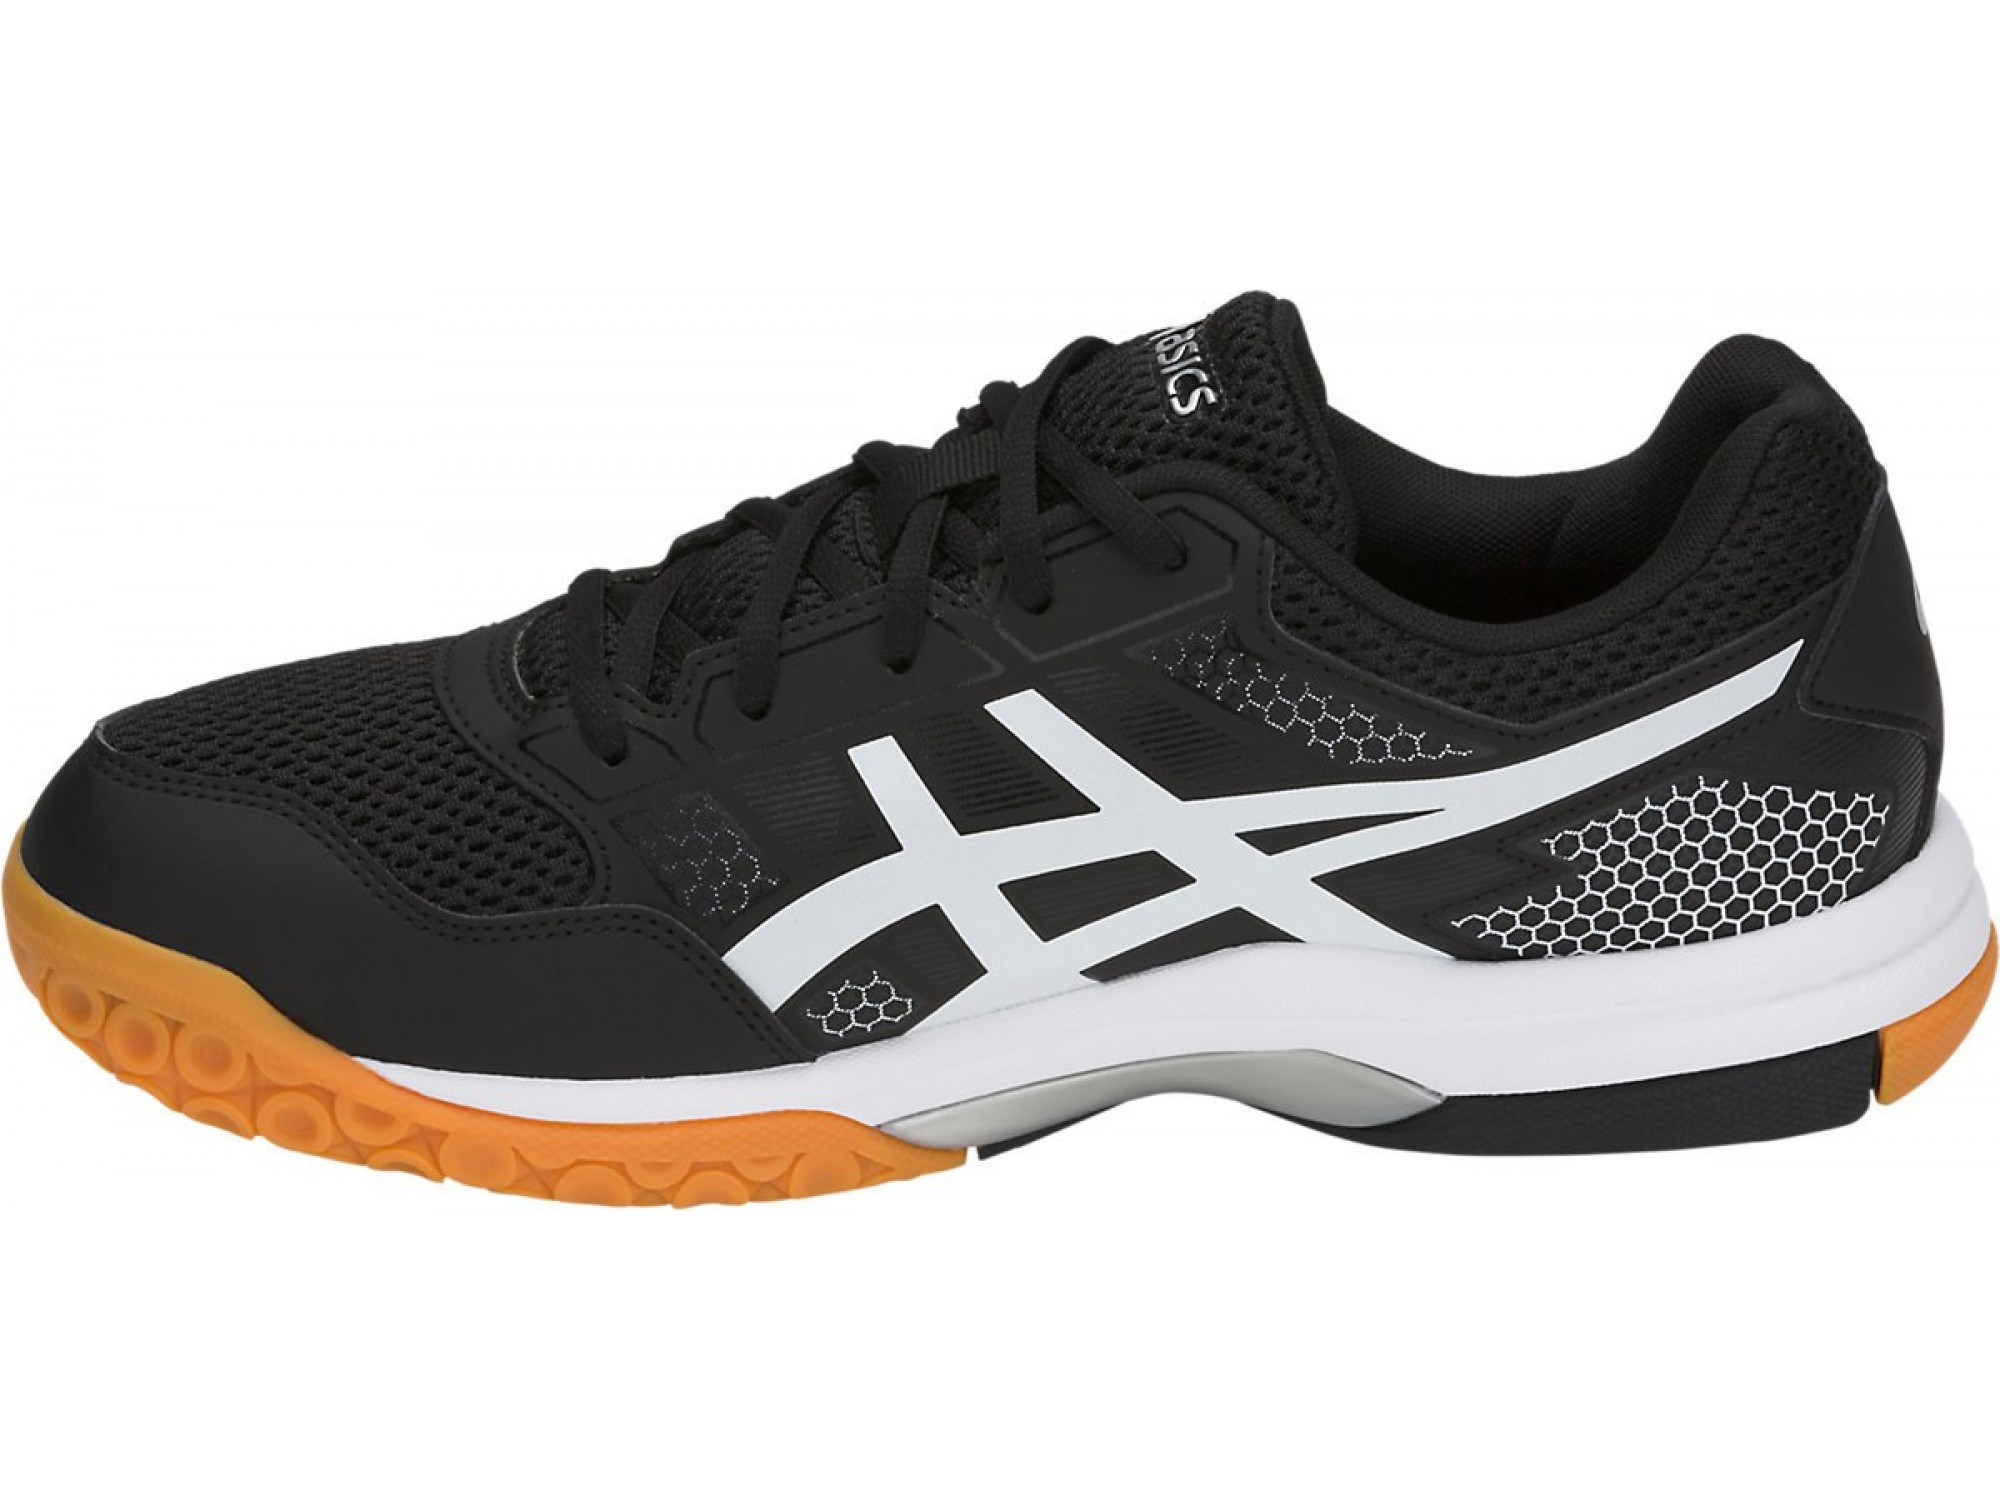 Кроссовки ASICS M Gel-Rocket 8 BK/WH 2019. Фото ¹2